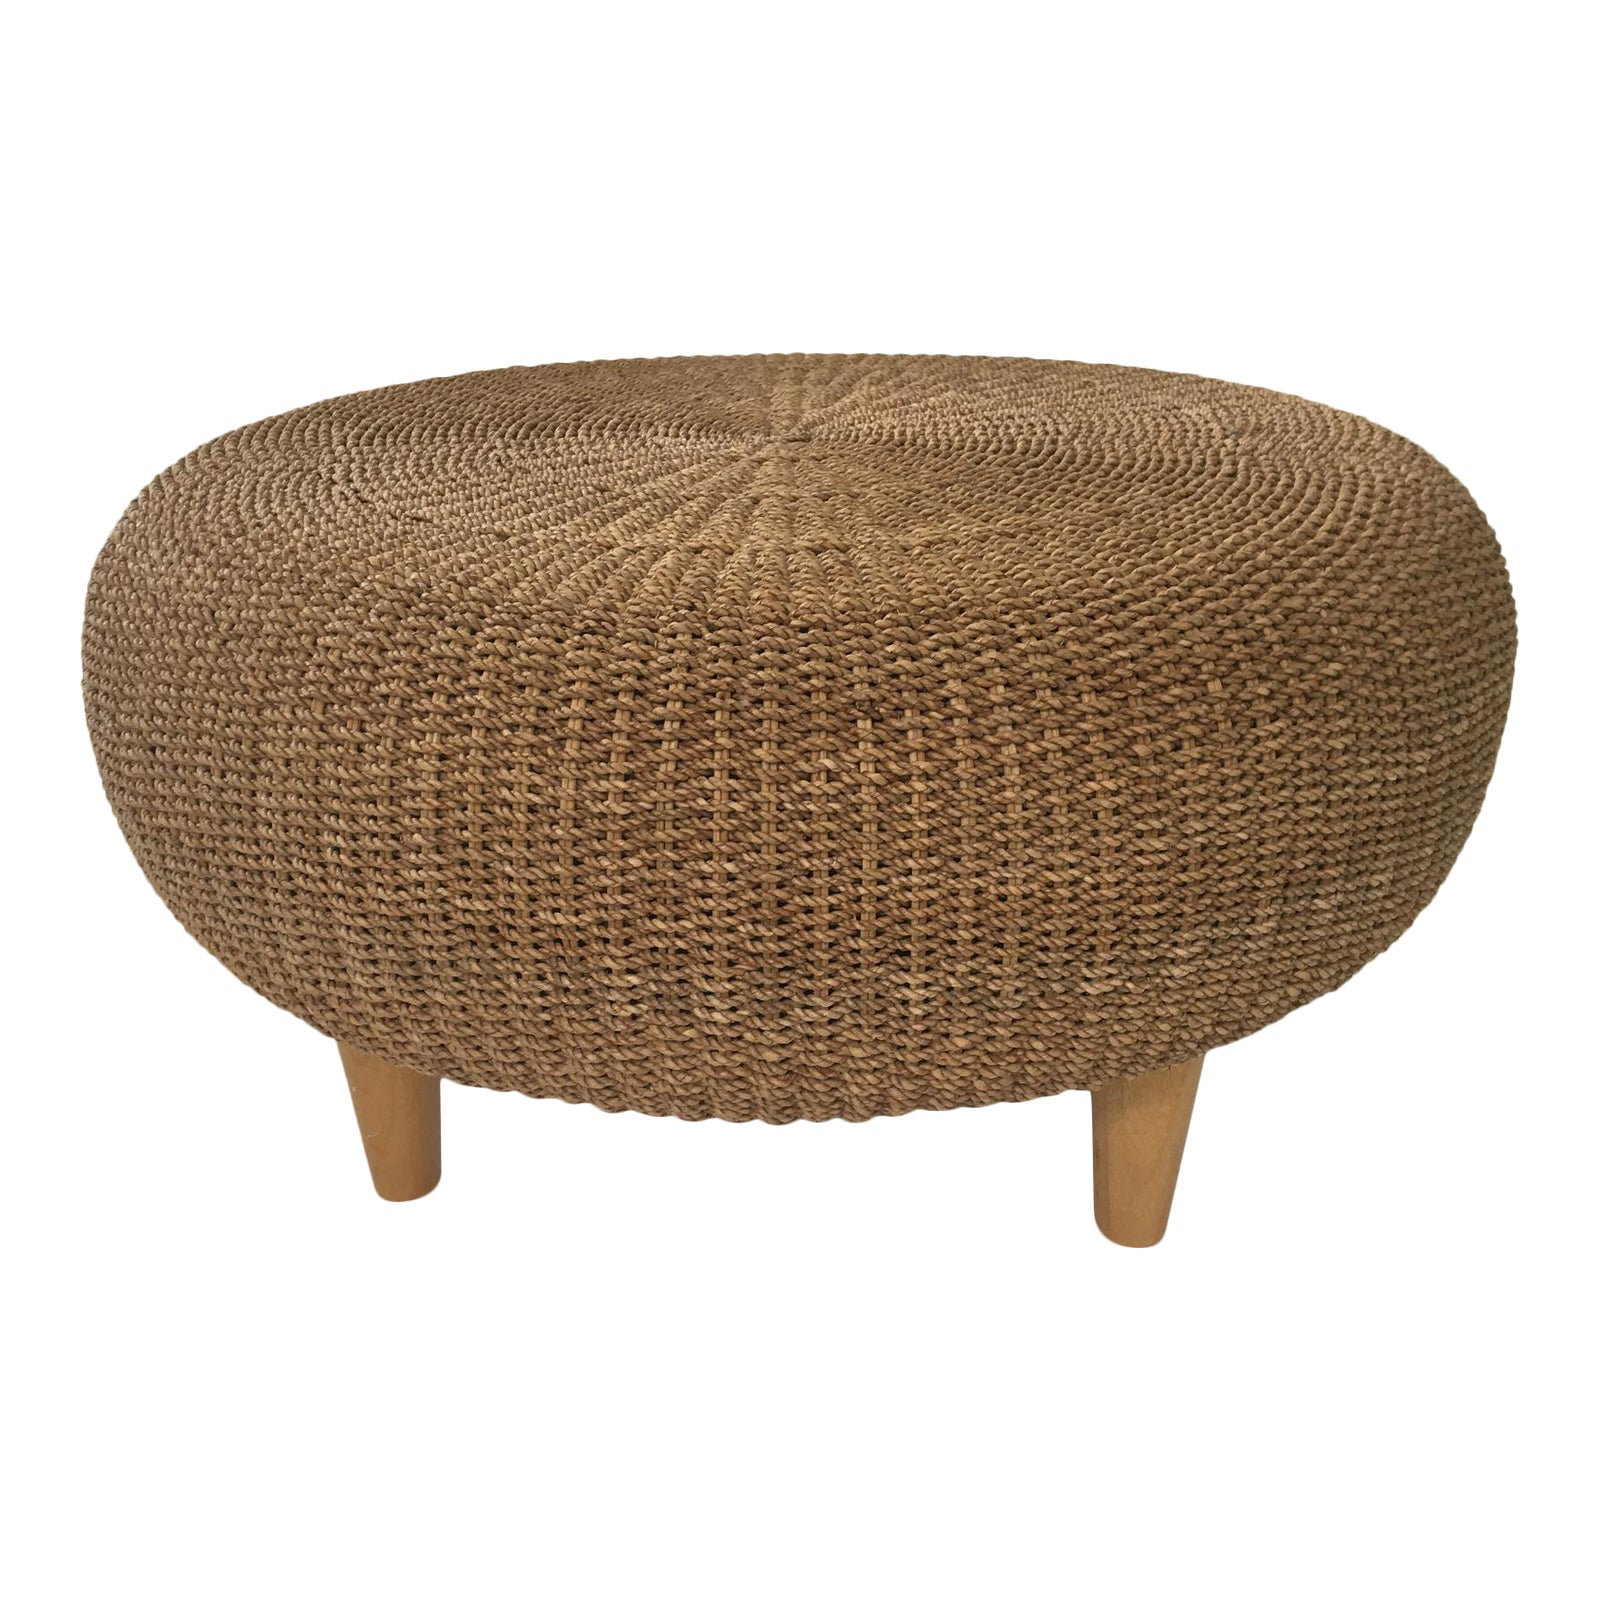 Incredible Round Woven Rattan Wicker Ottoman Coffee Table Pabps2019 Chair Design Images Pabps2019Com